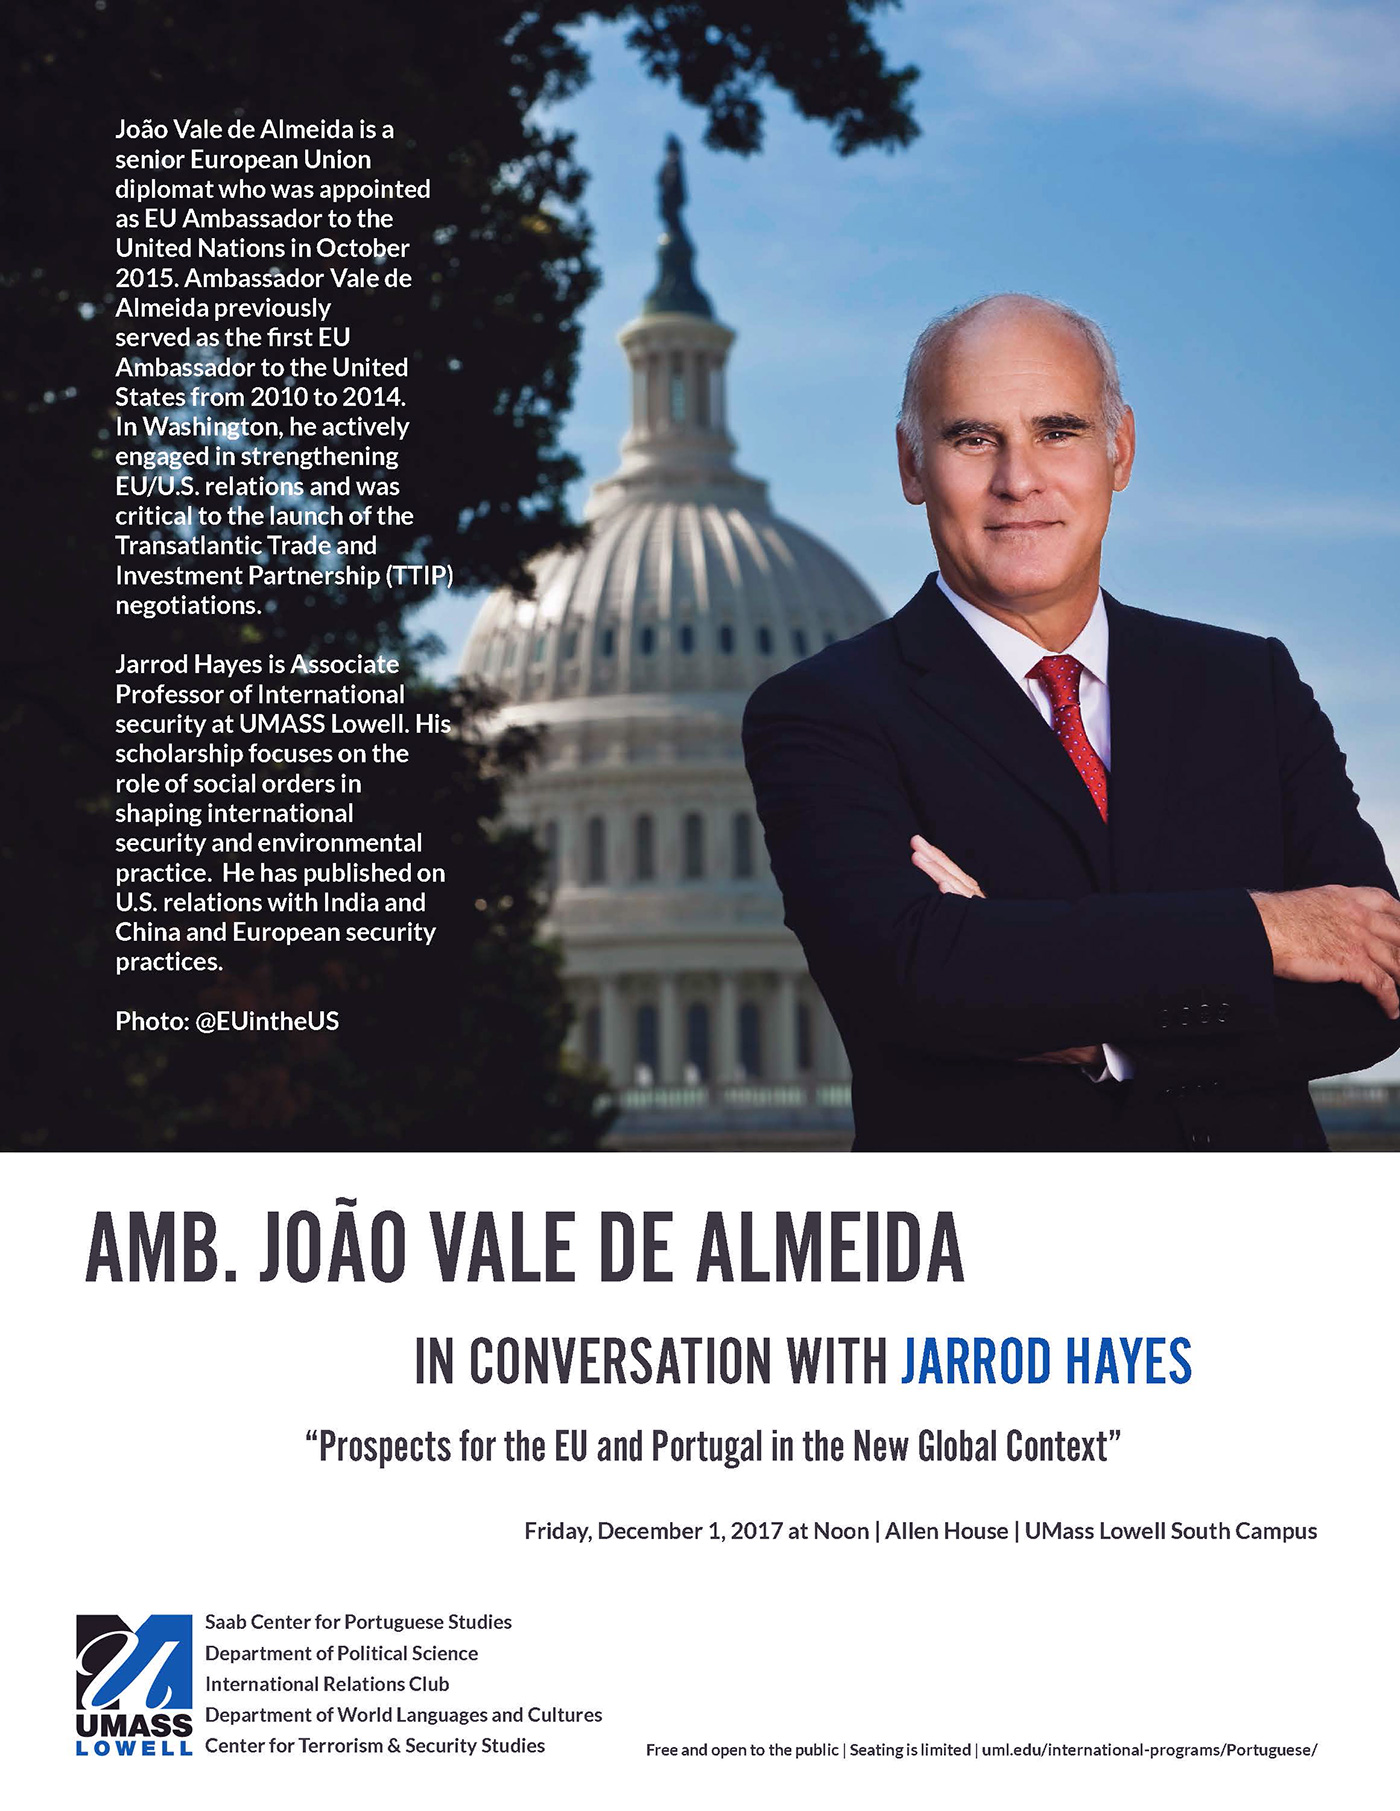 Flyer for Ambassador João Vale de Almeida In IN CONVERSATION WITH JARROD HAYES